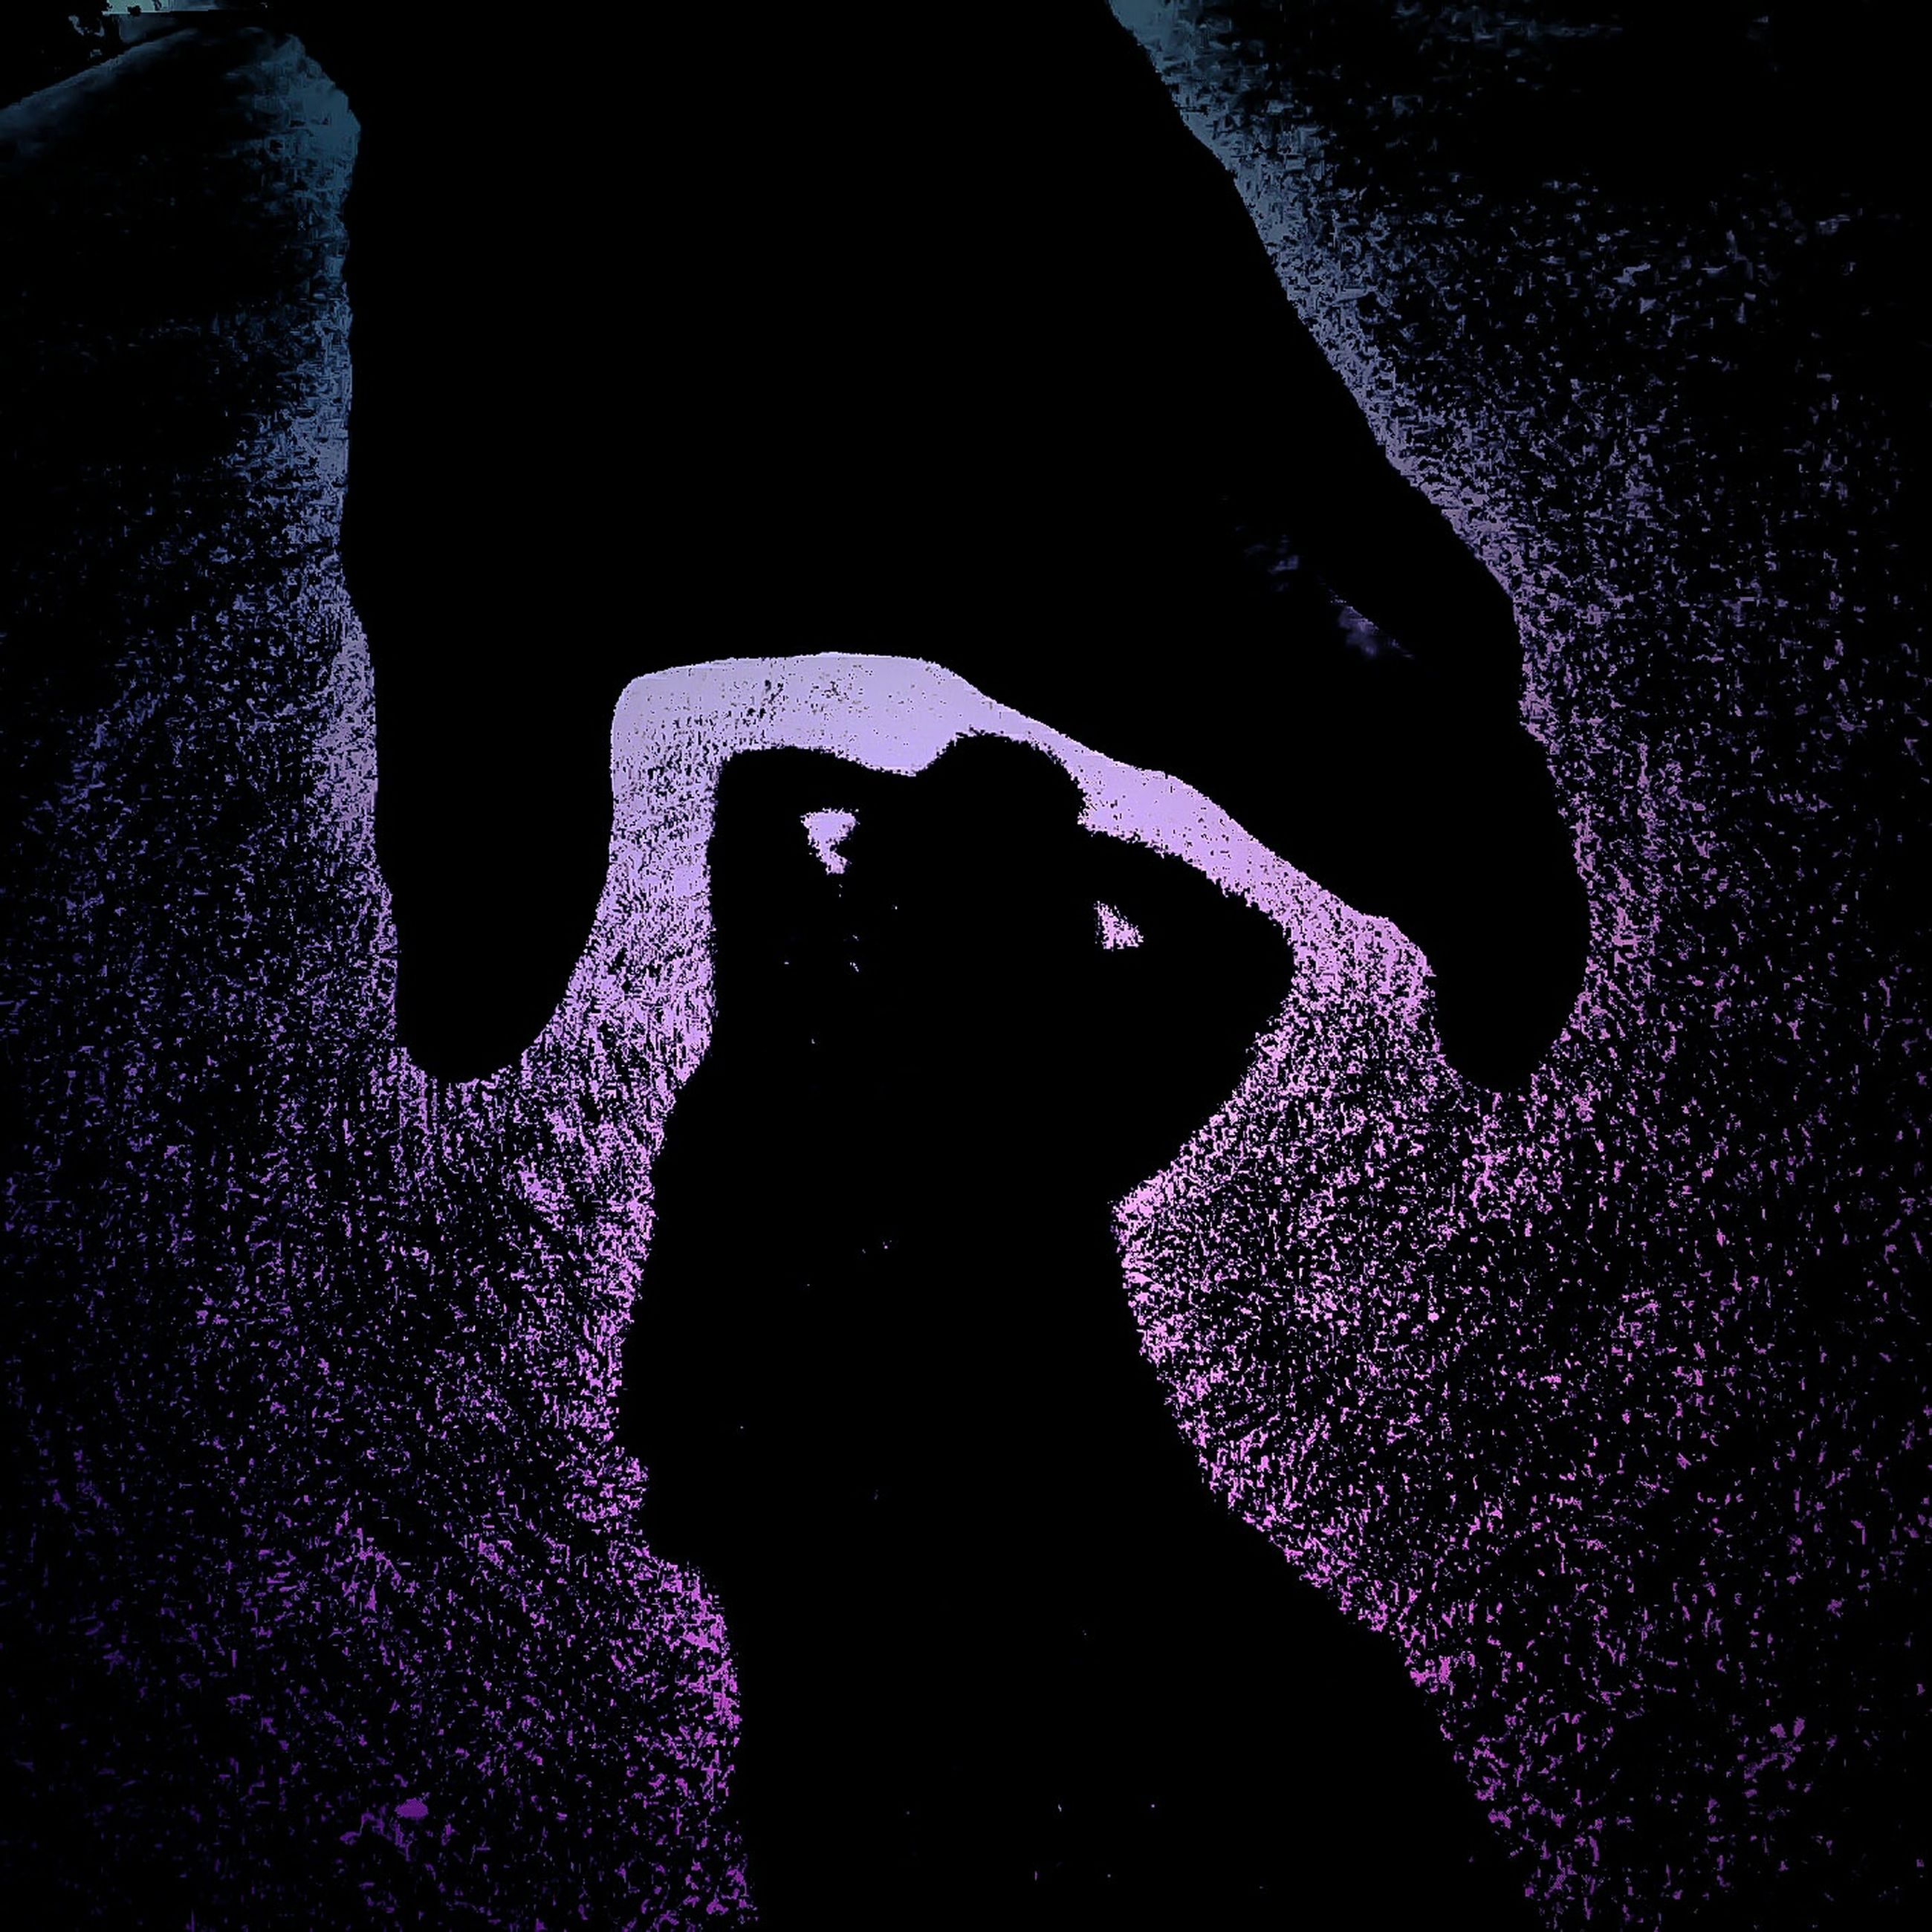 night, dark, close-up, unrecognizable person, silhouette, indoors, water, high angle view, blue, light - natural phenomenon, black background, black color, standing, men, purple, nature